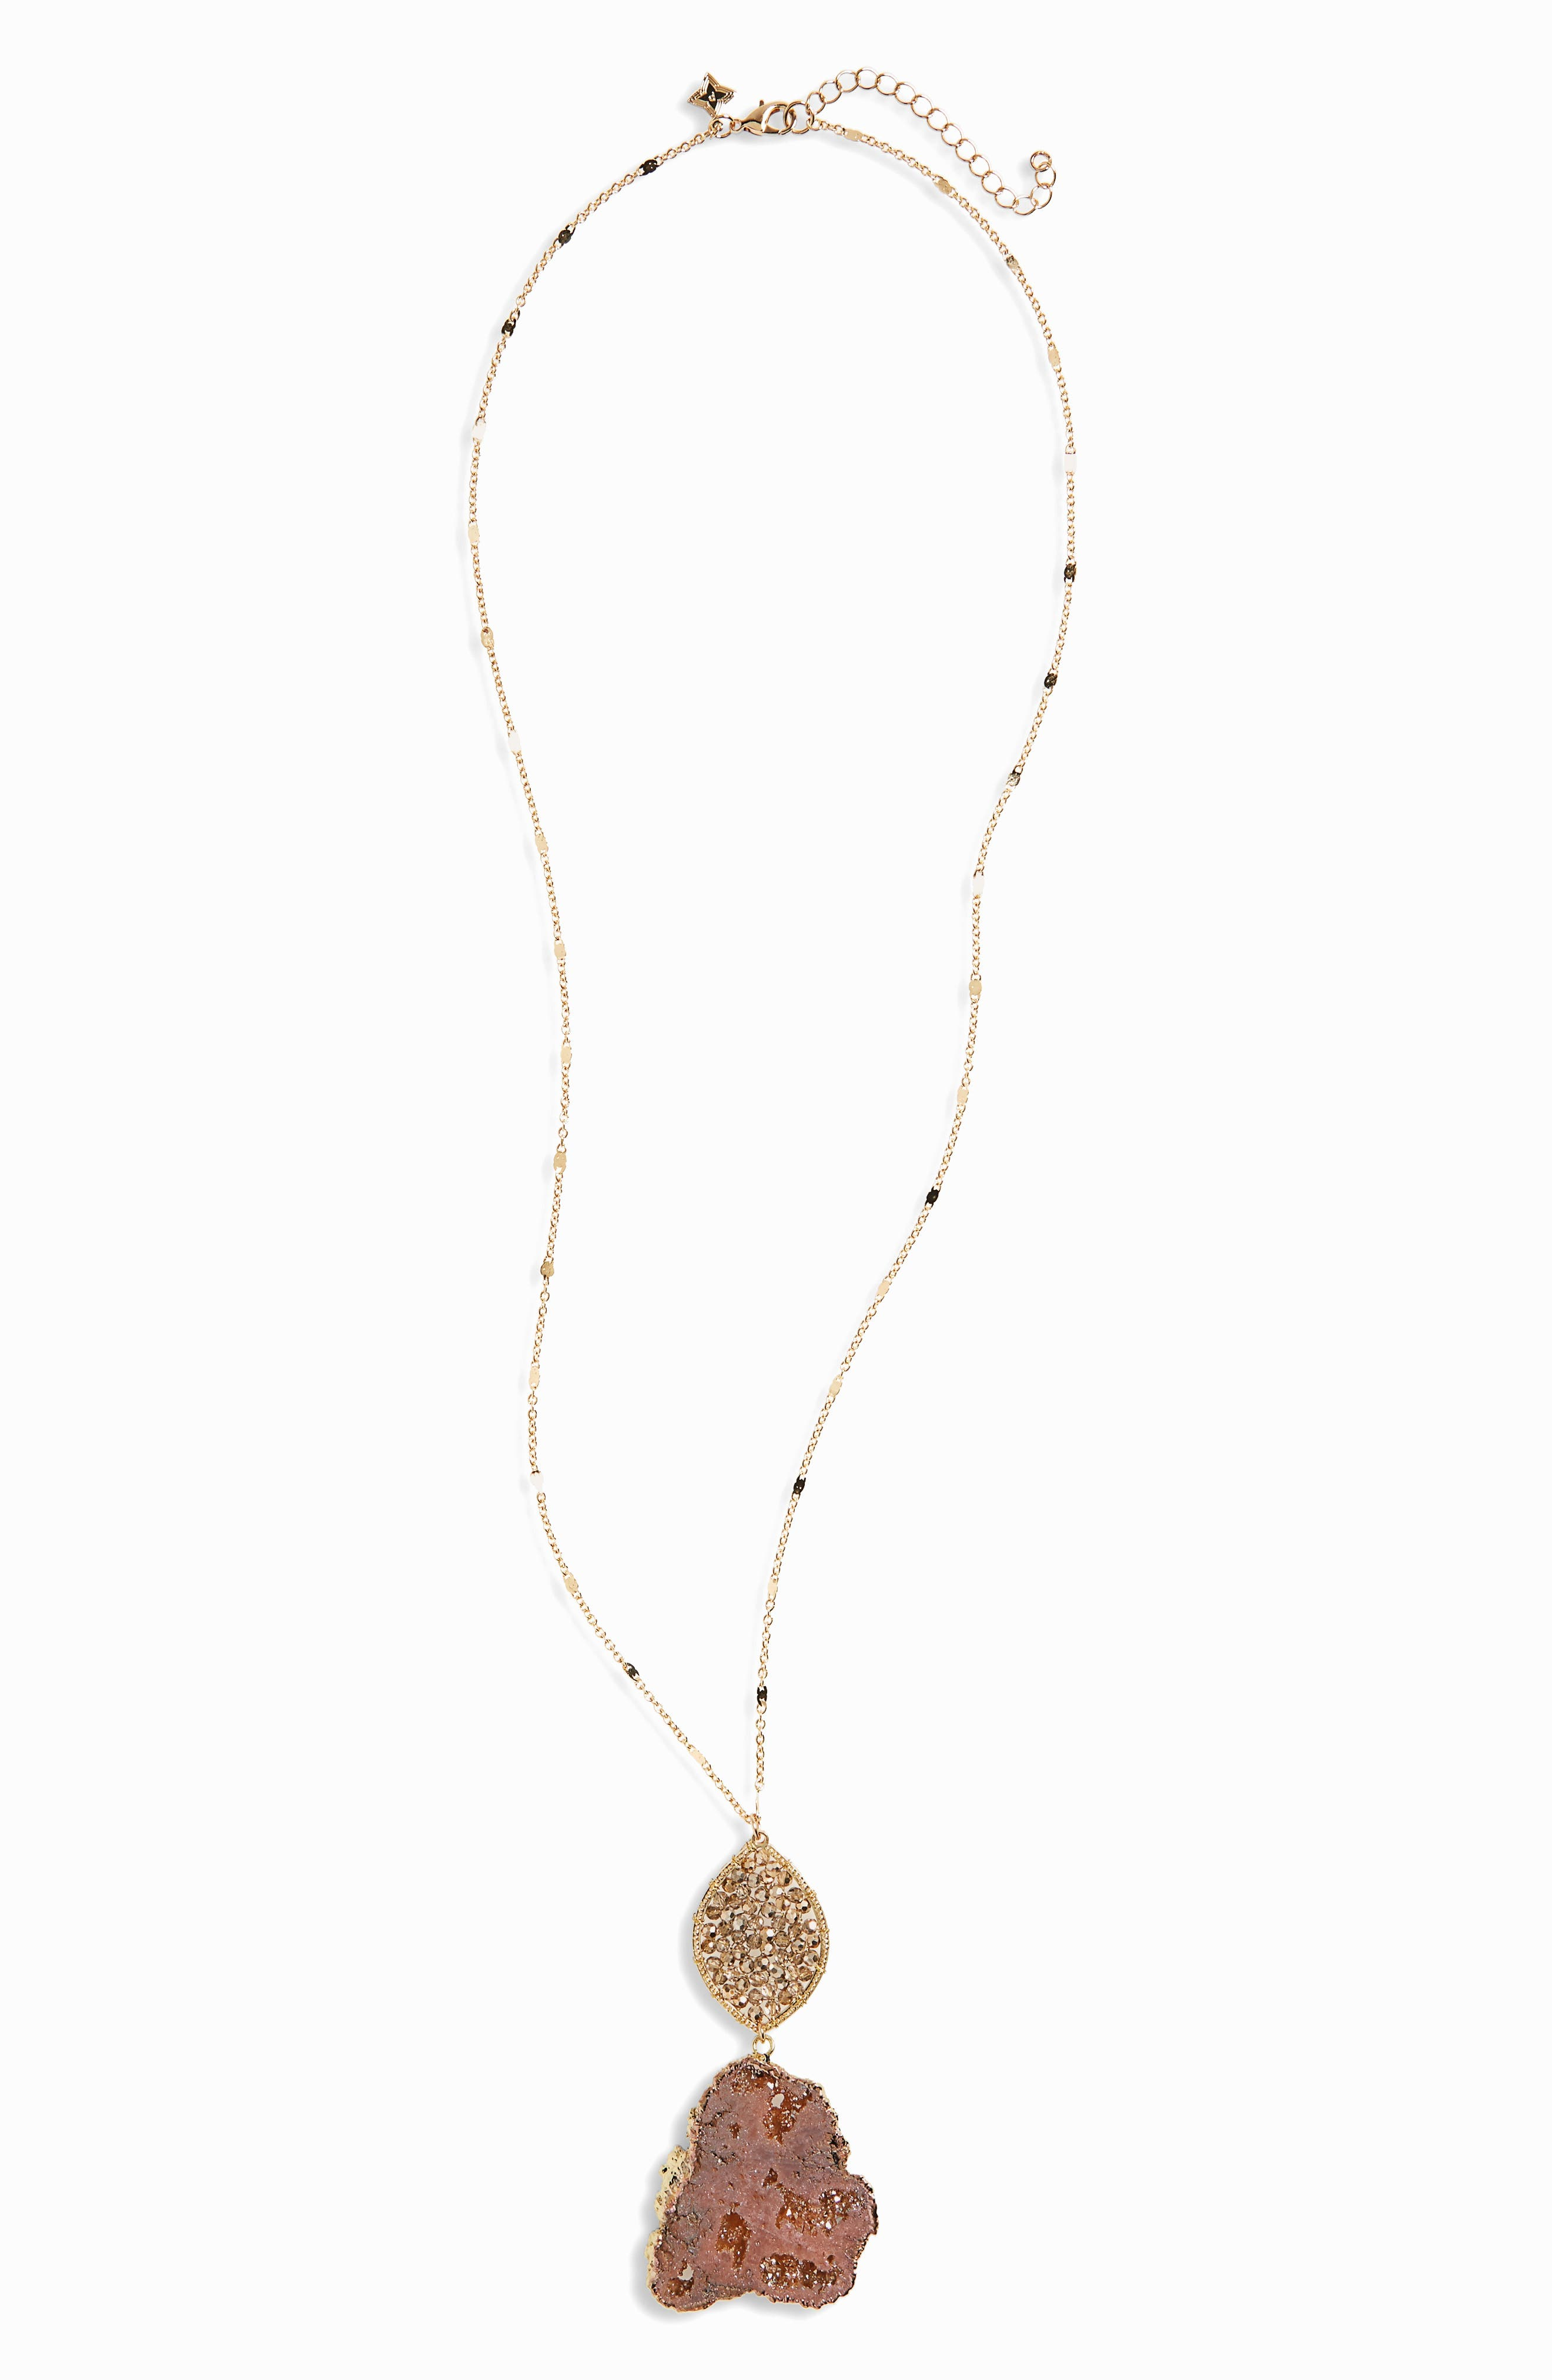 Agate Beaded Pendant Necklace,                         Main,                         color, 950